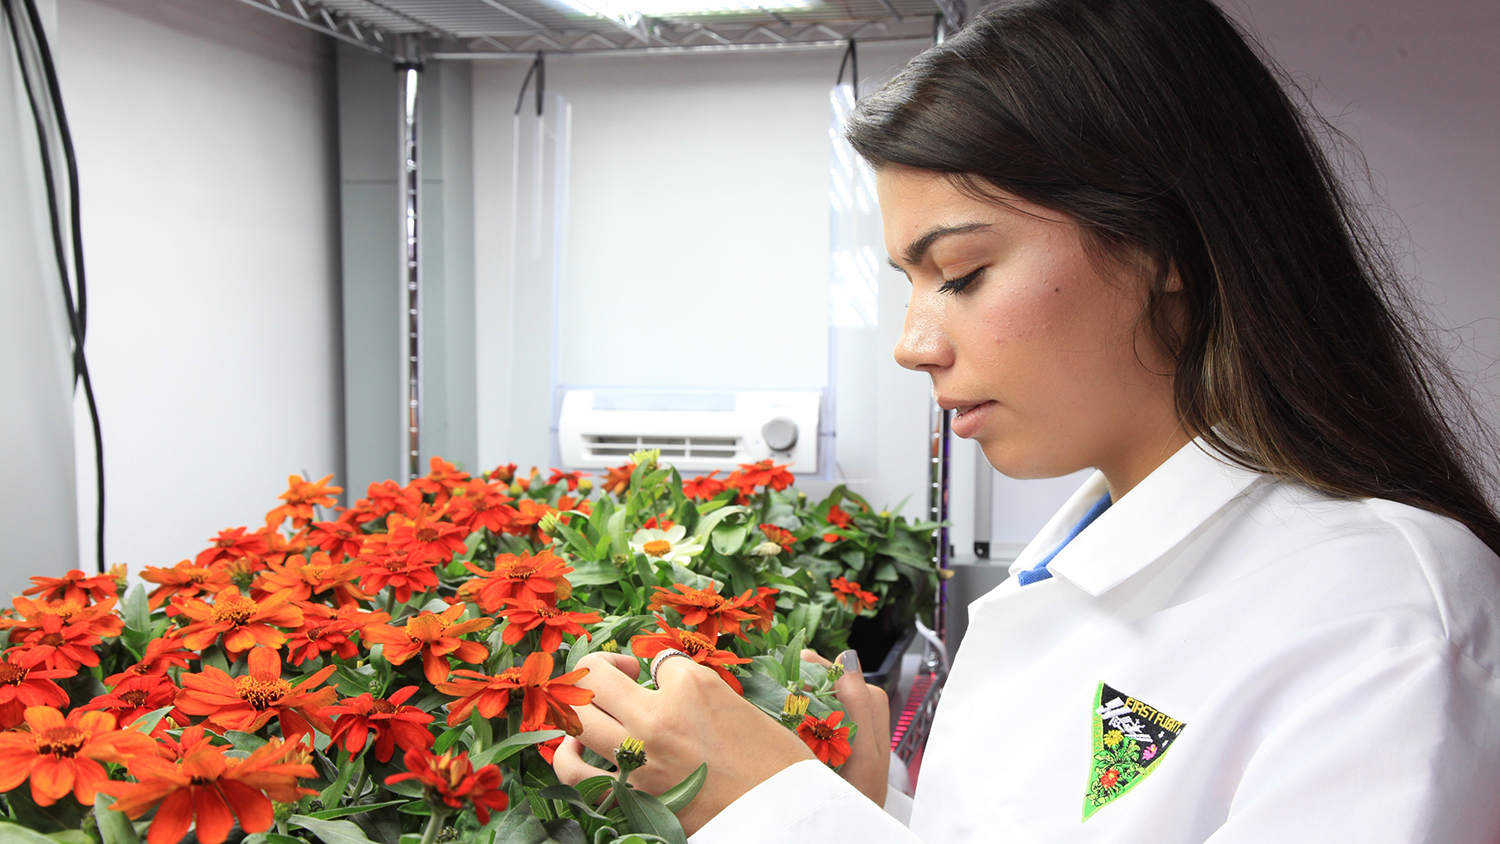 Woman in lab coat with zinnias.